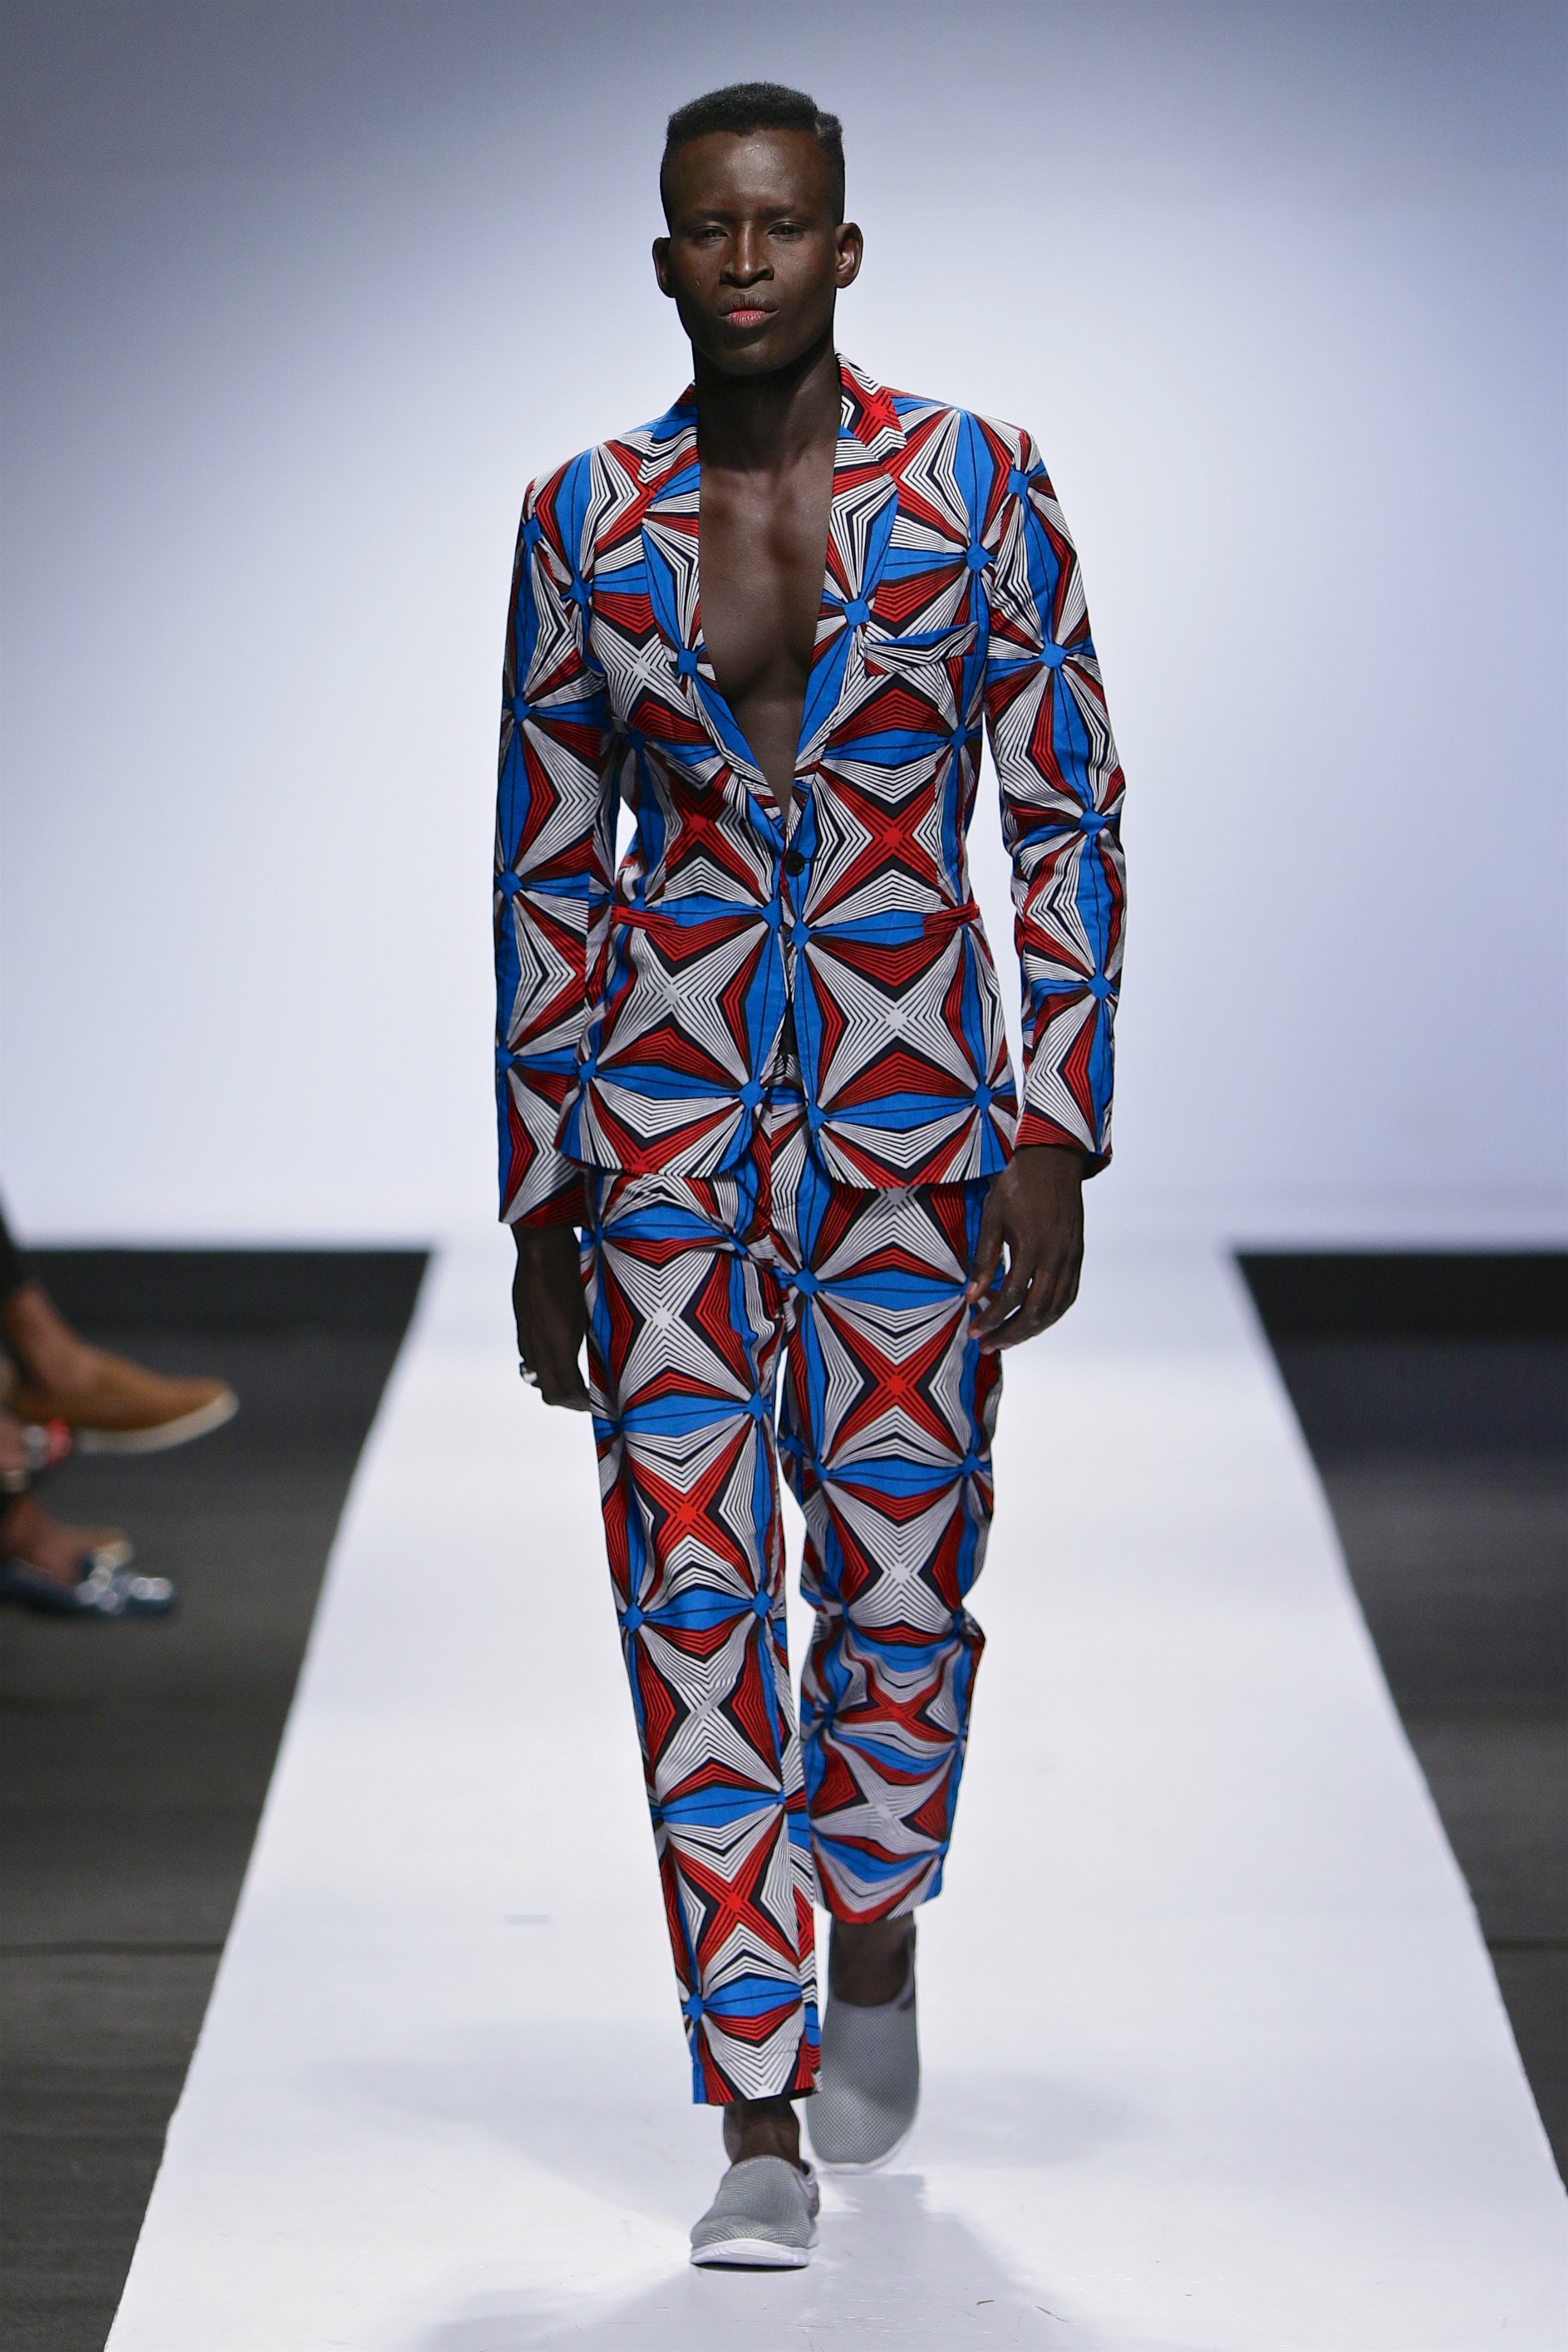 Laurence Airline Lagos Fashion Week Menswear Trends Tendencias Moda Hombre